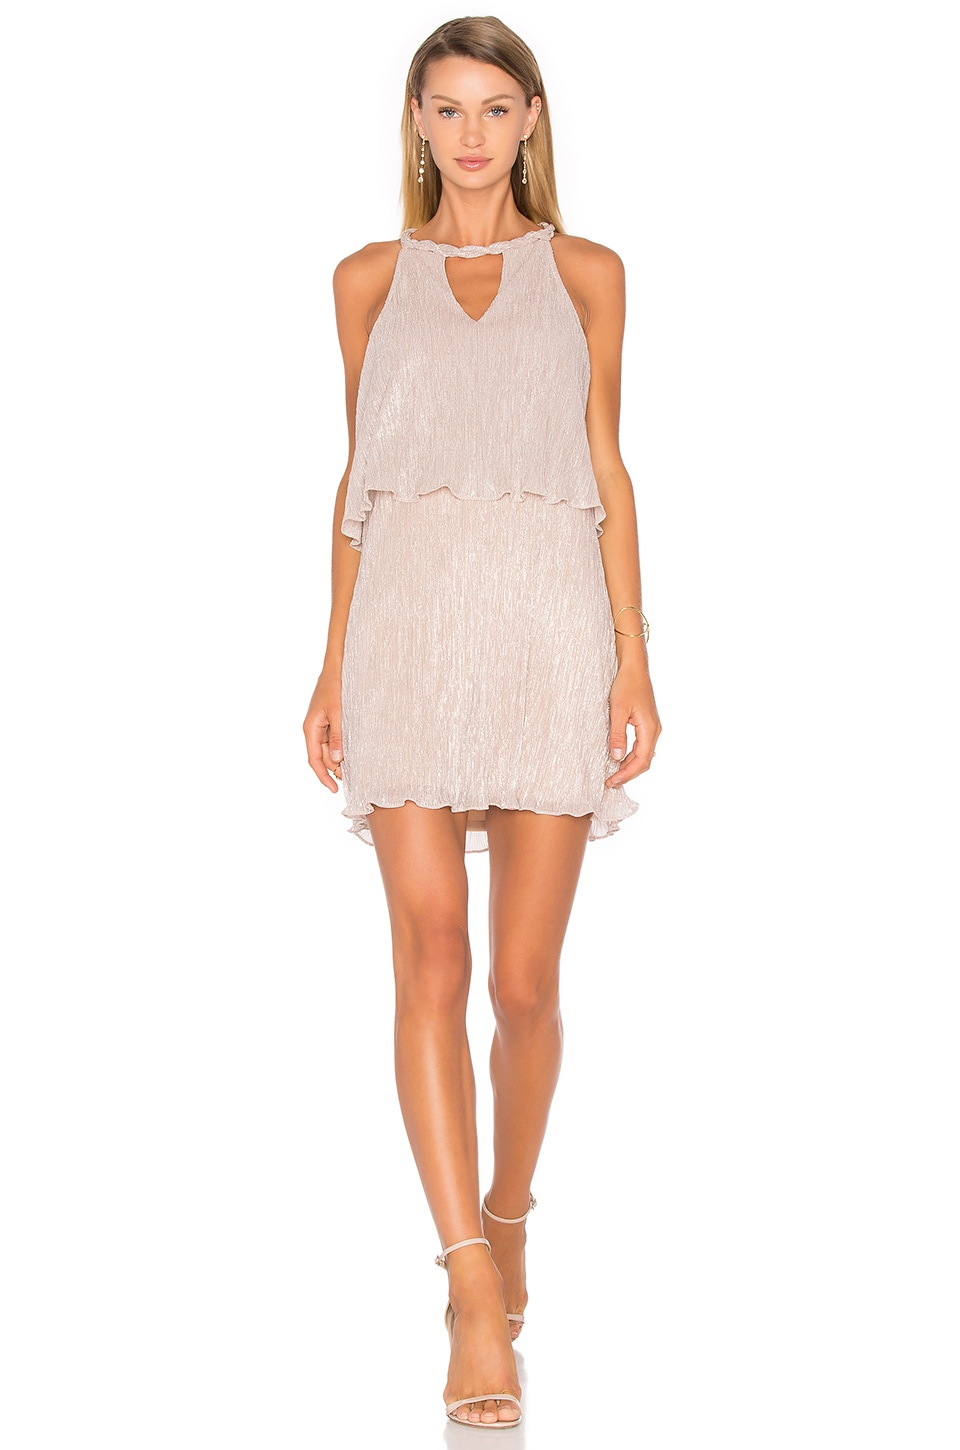 Ella Moss Cerine Dress in Pink Champagne